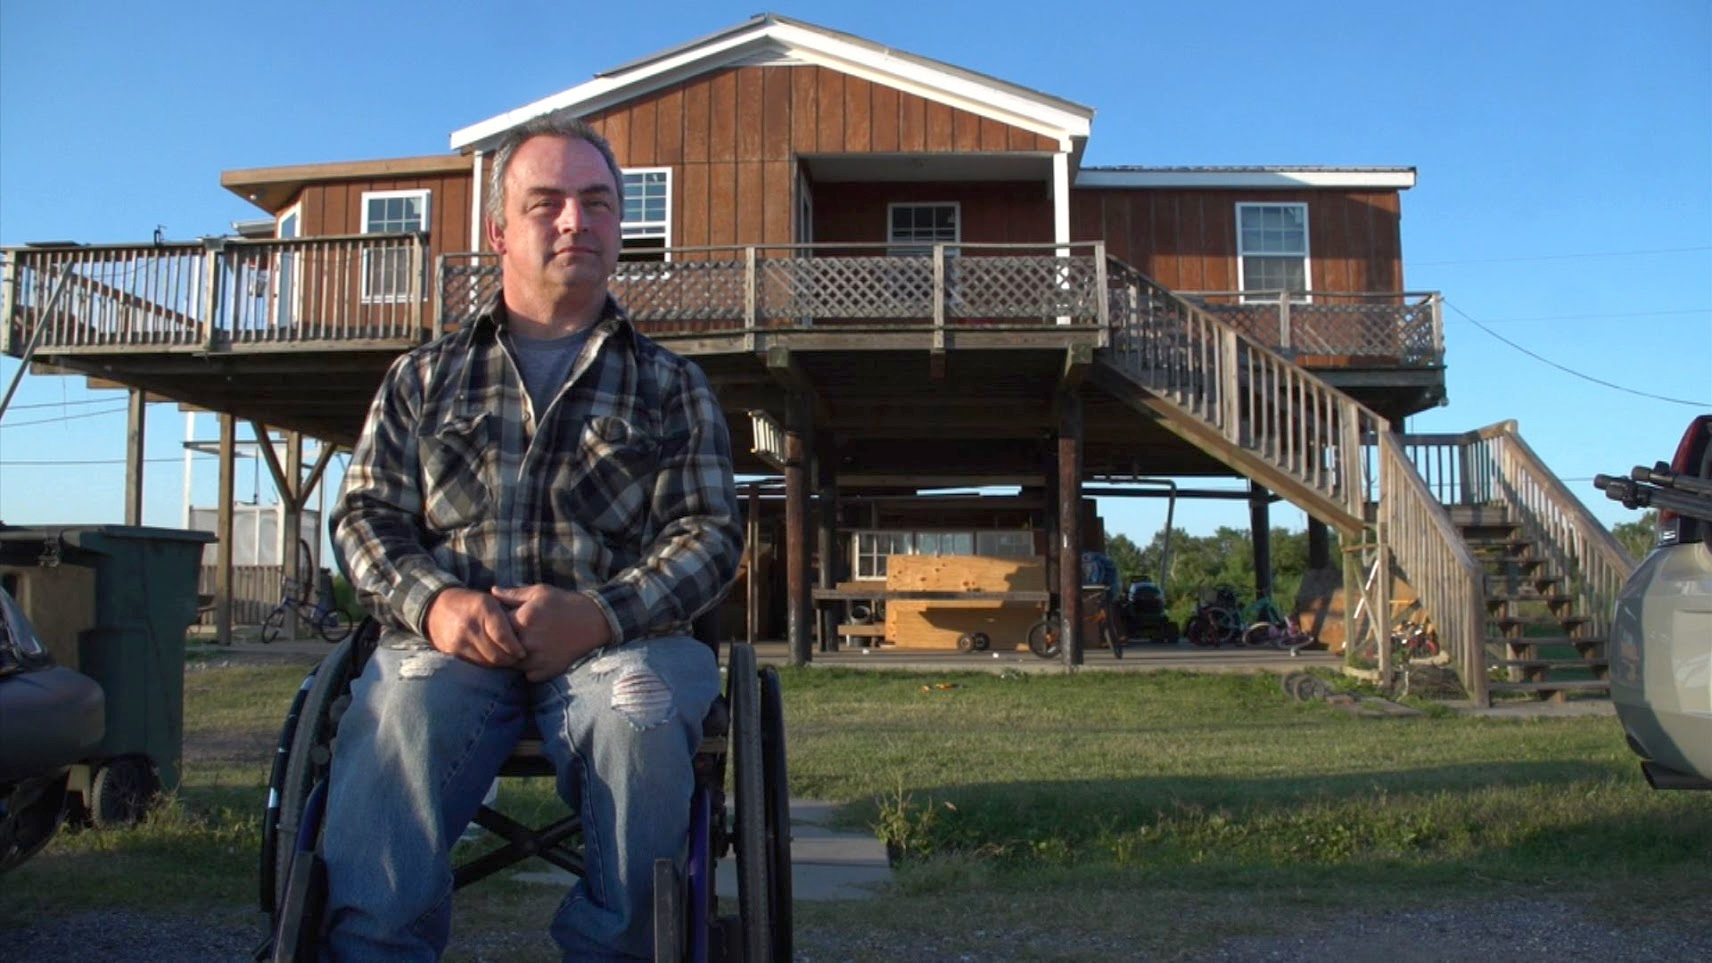 Chris Brunet appears outside of his home in 2012. He has lived on Isle de Jean Charles in coastal Louisiana his whole life. Photo by PBS NewsHour